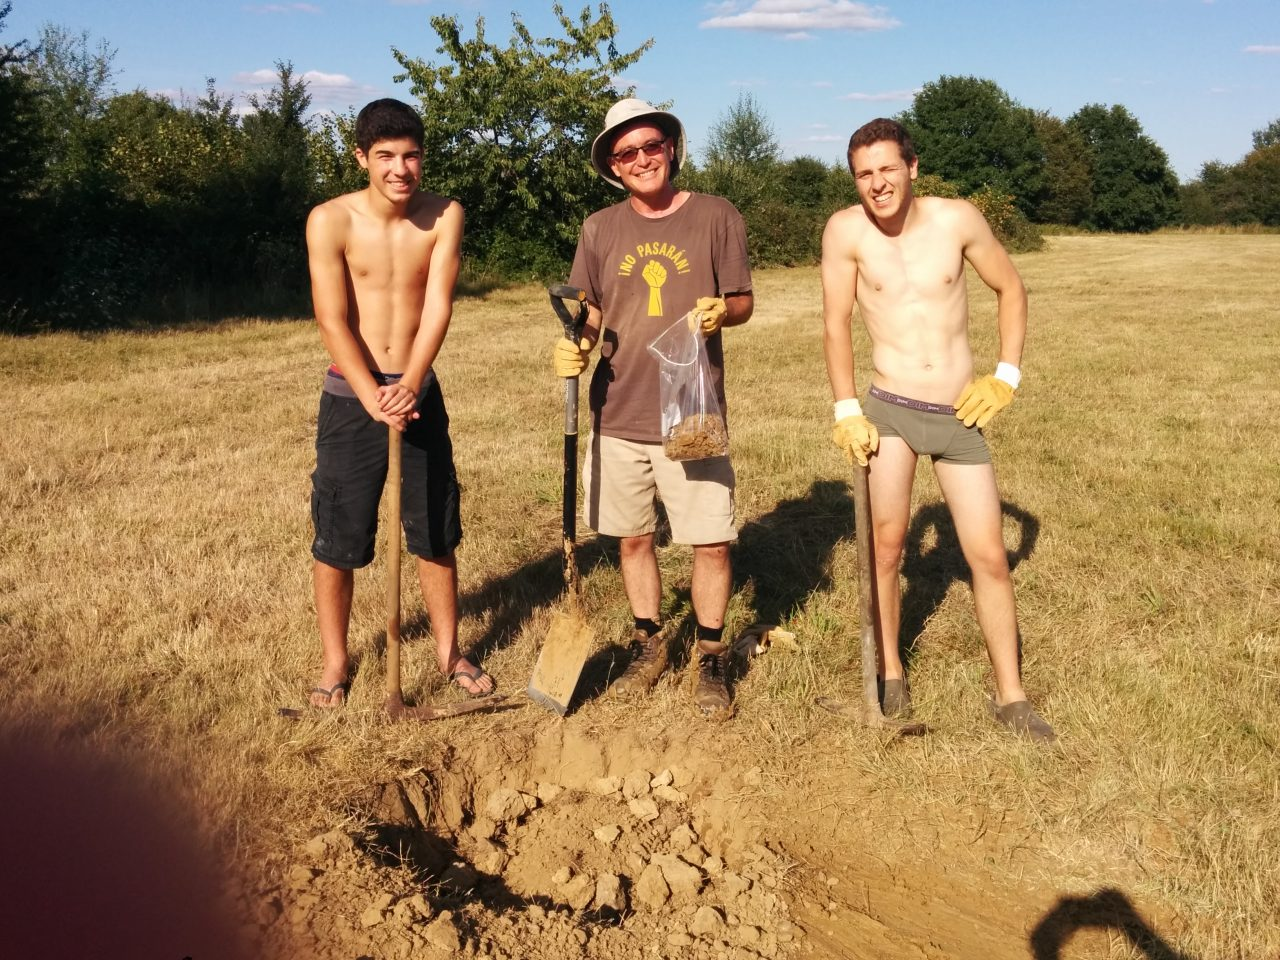 Hole diggers extraordinaire